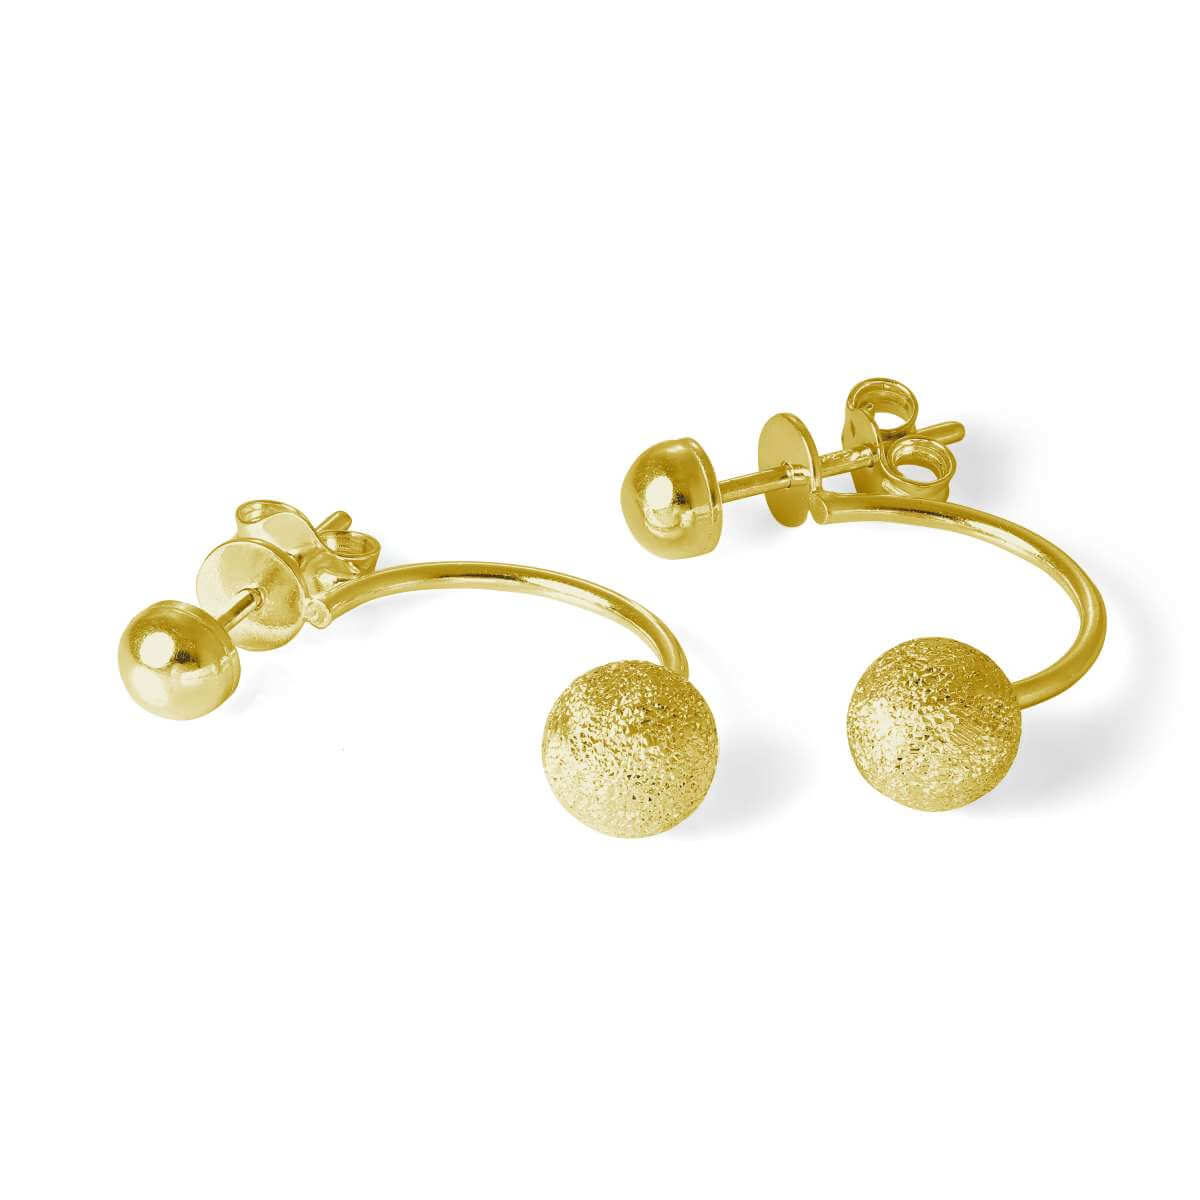 Gold Plated Sterling Silver Frosted Ball Ear Jacket Earrings